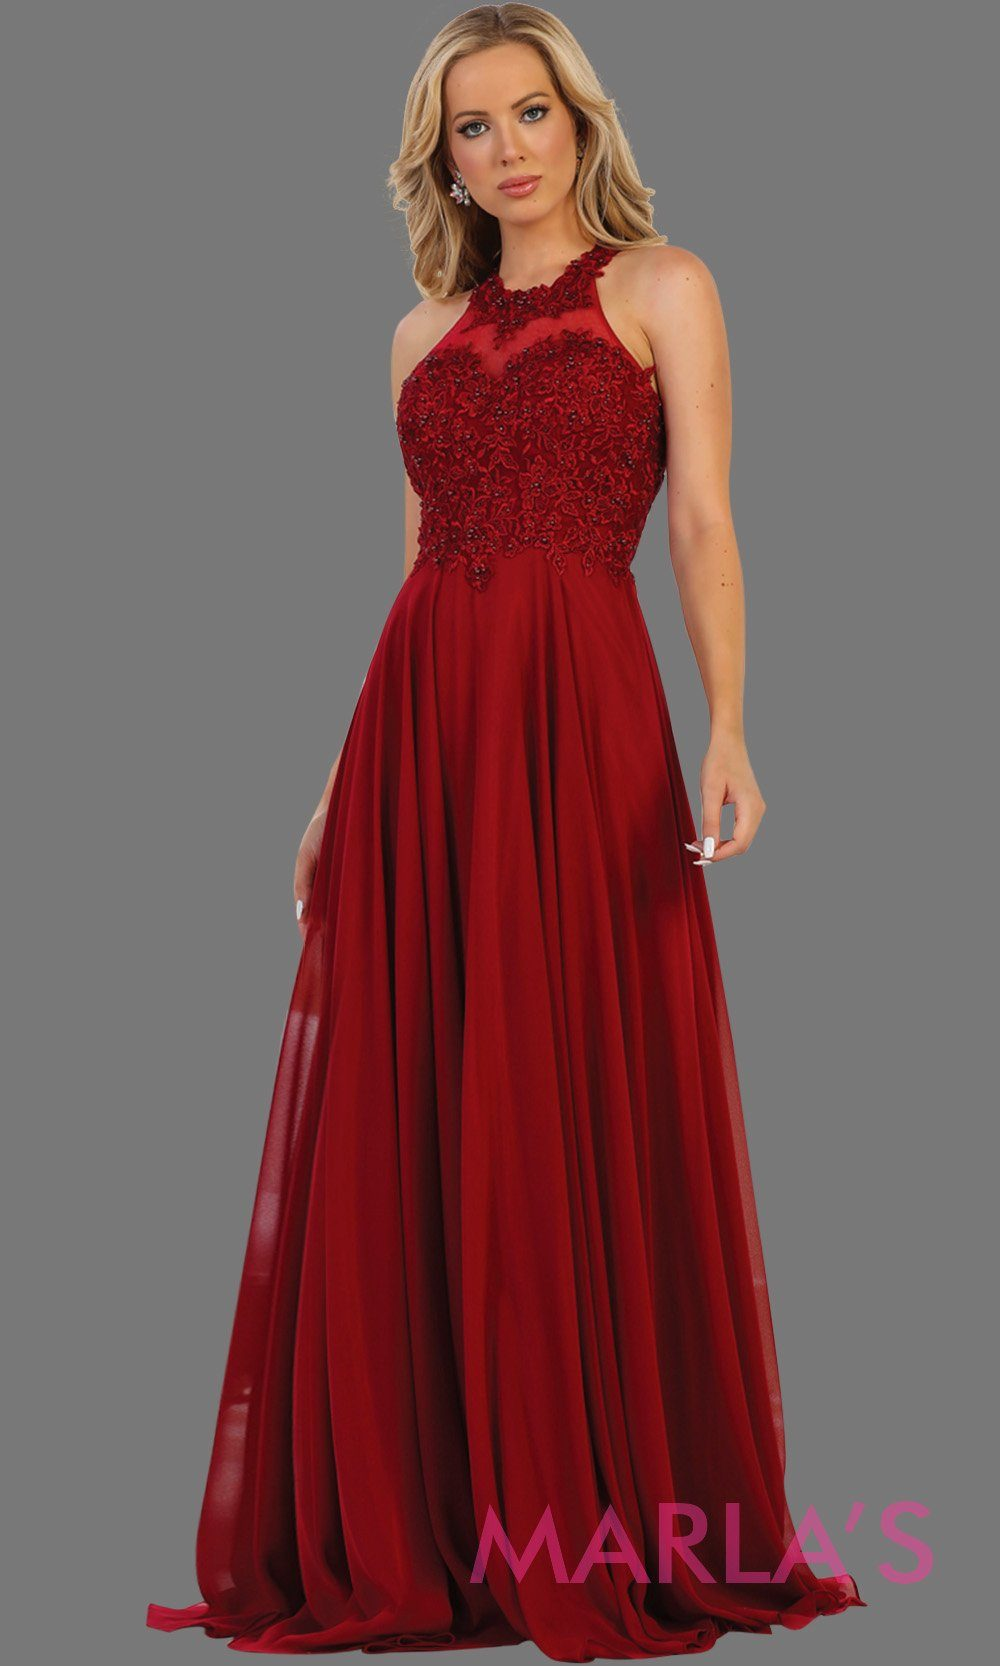 Long burgundy flowy high neck dress with lace top and open back. Perfect for dark red prom dress, wedding guest dress, formal party evening gown, destination wedding, bridesmaid dress. Available in Plus Sizes.